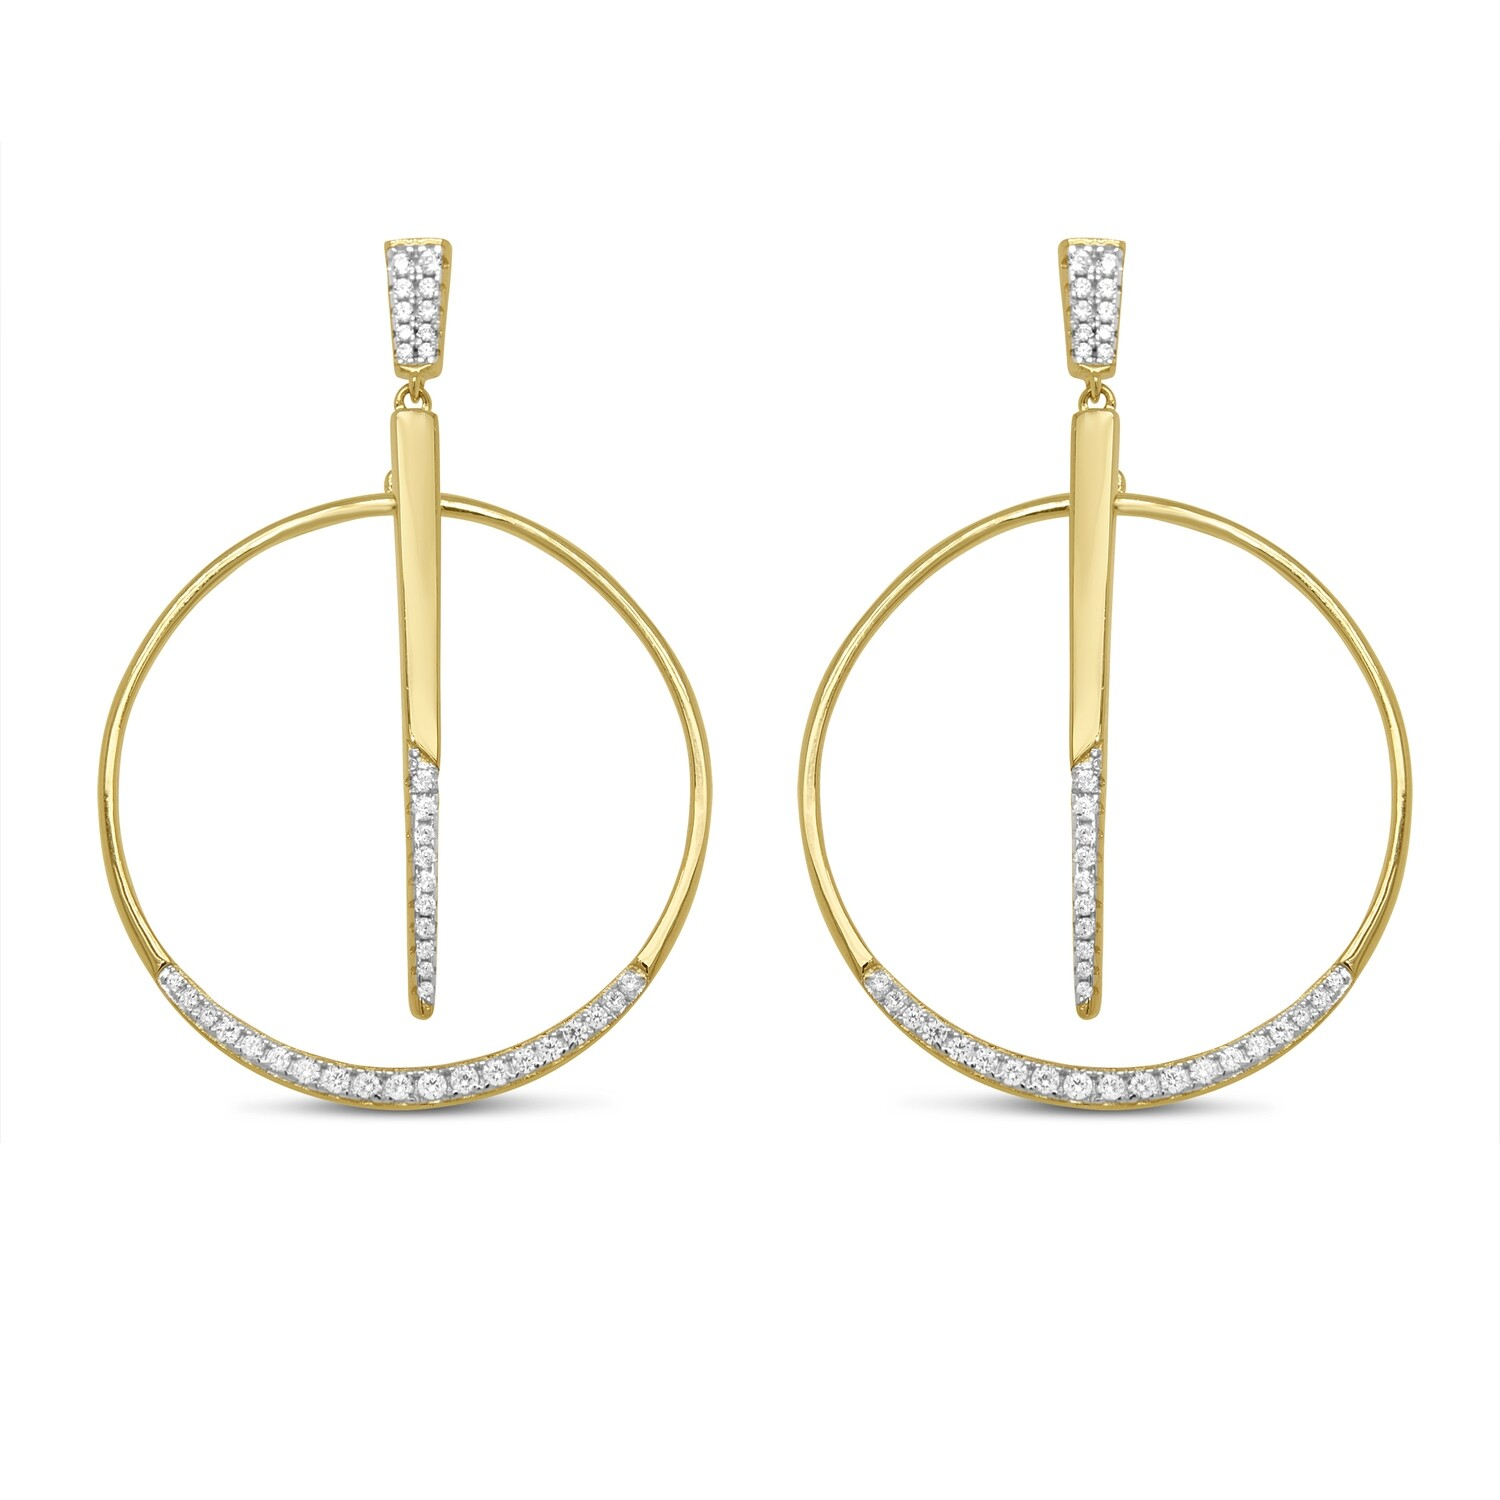 EA2162G Gold plated earrings set with white cz